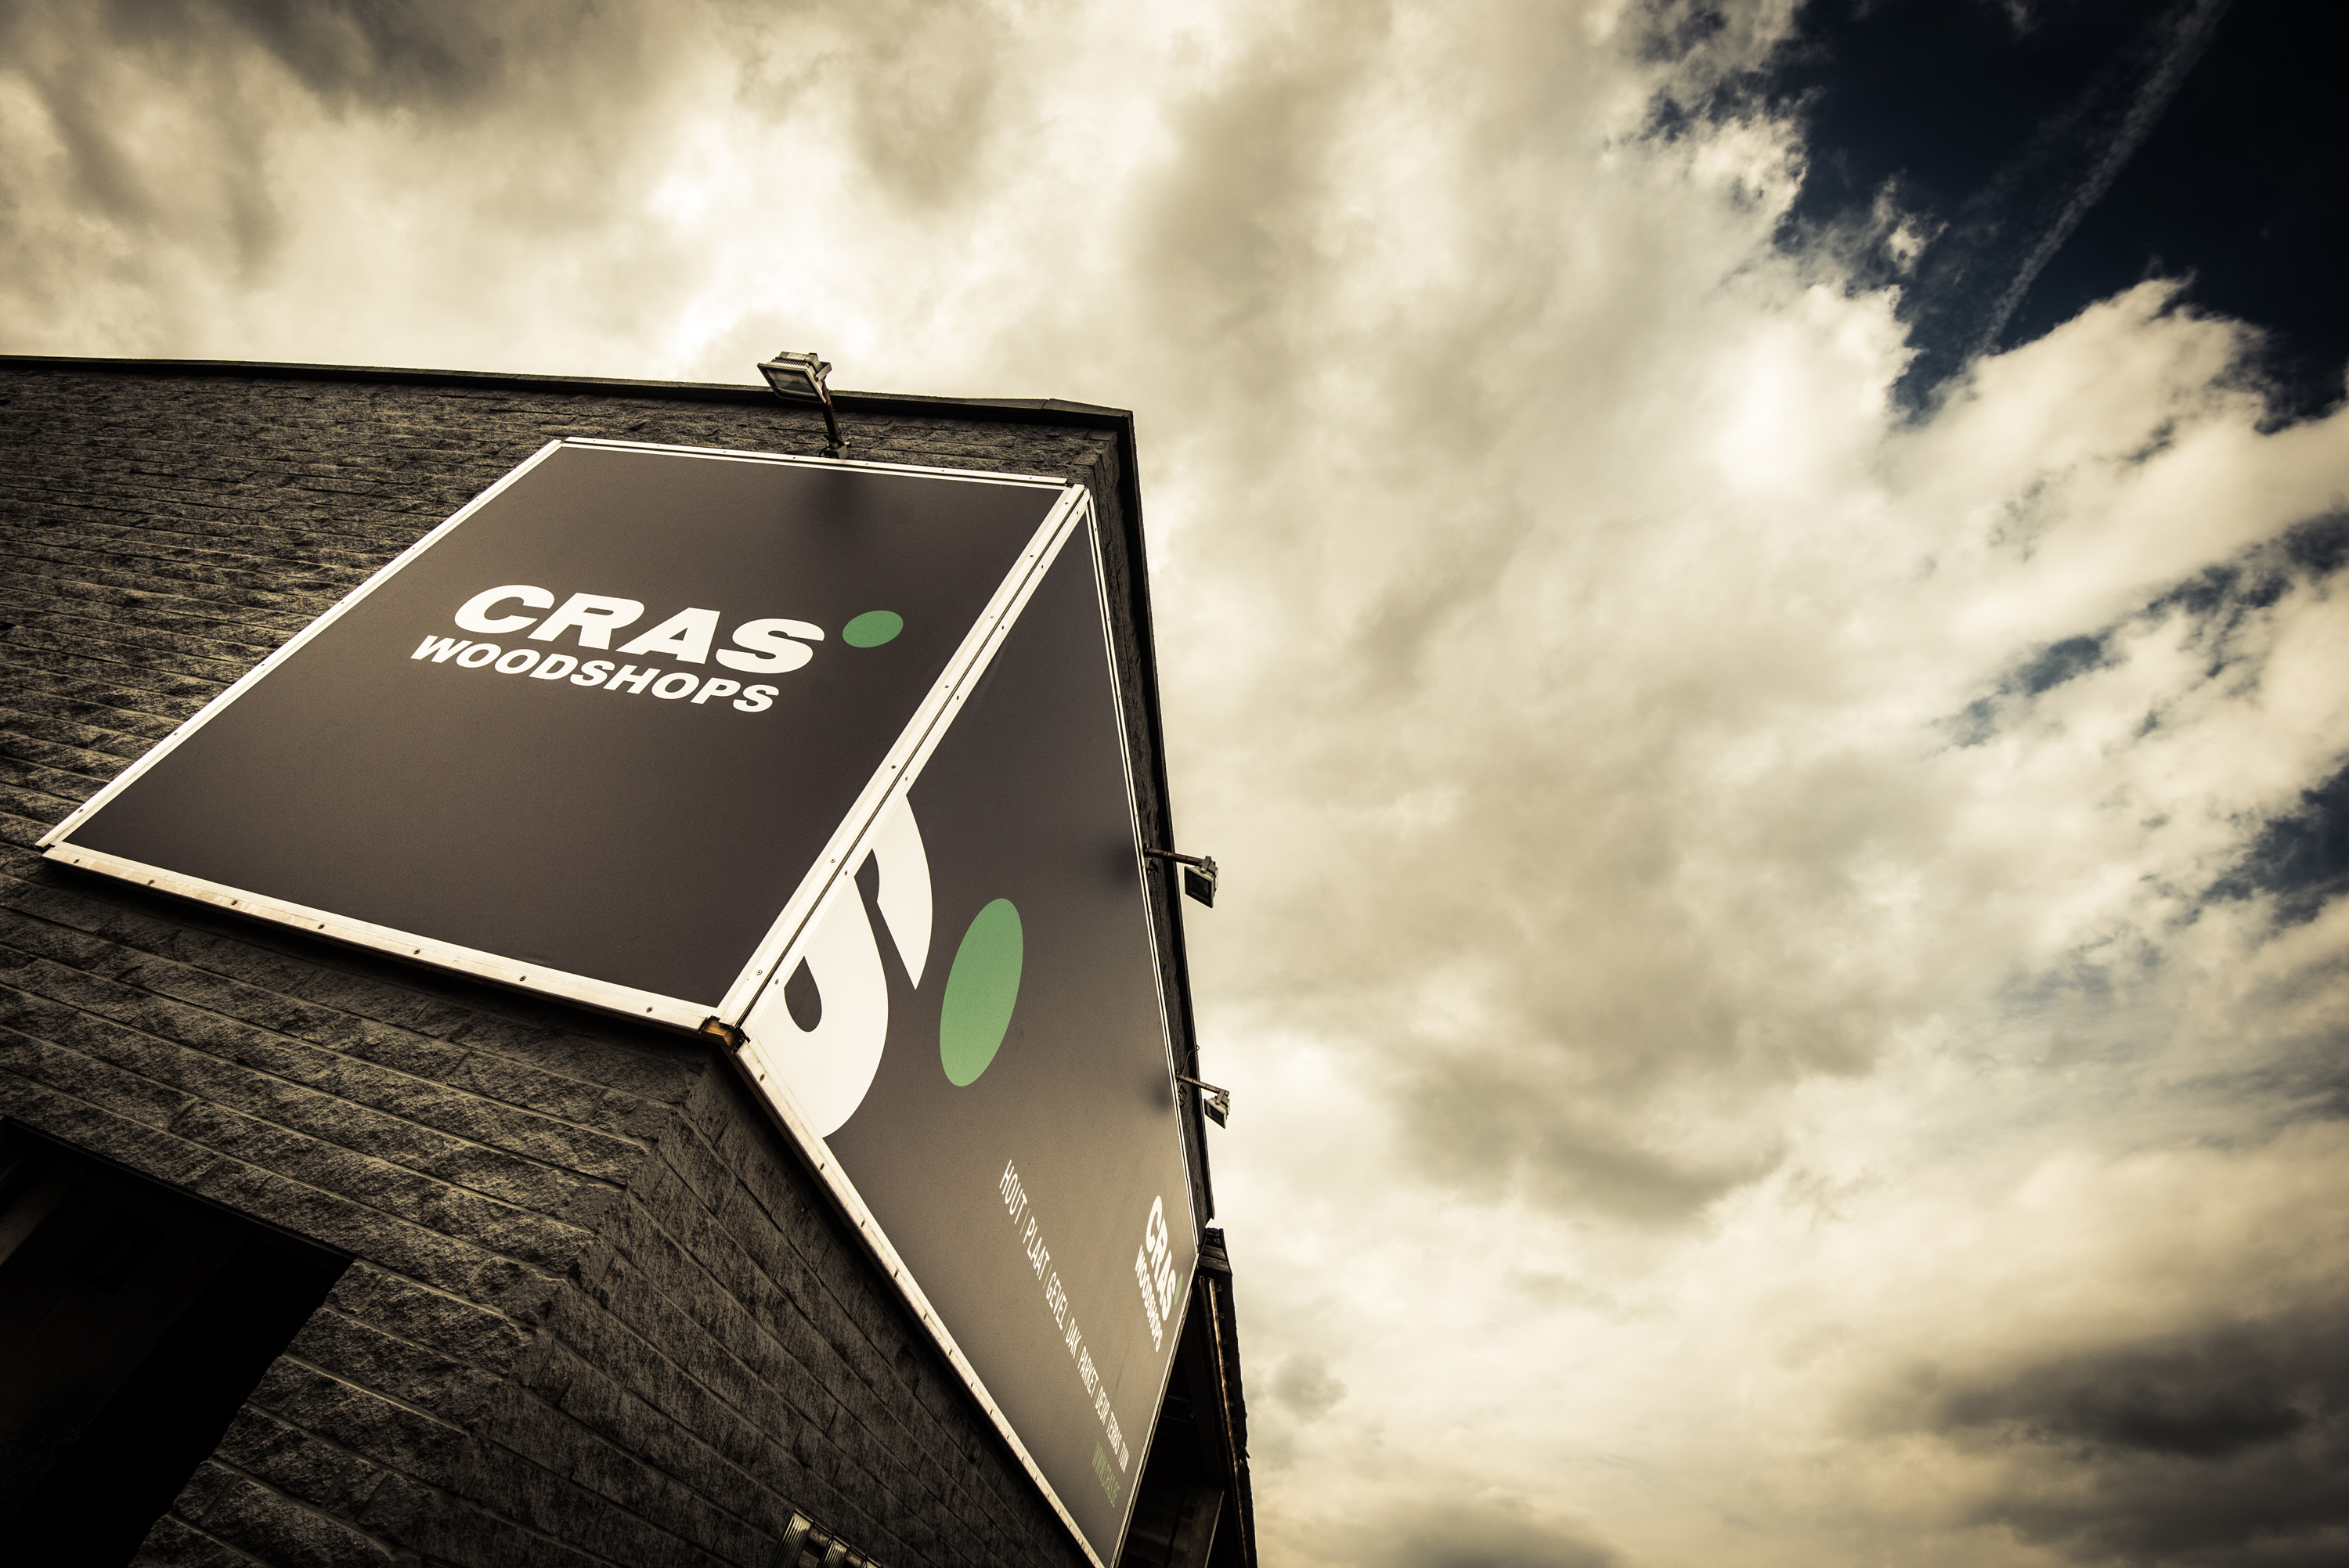 Cras: transforming the wood business with Salesforce and Visit 360